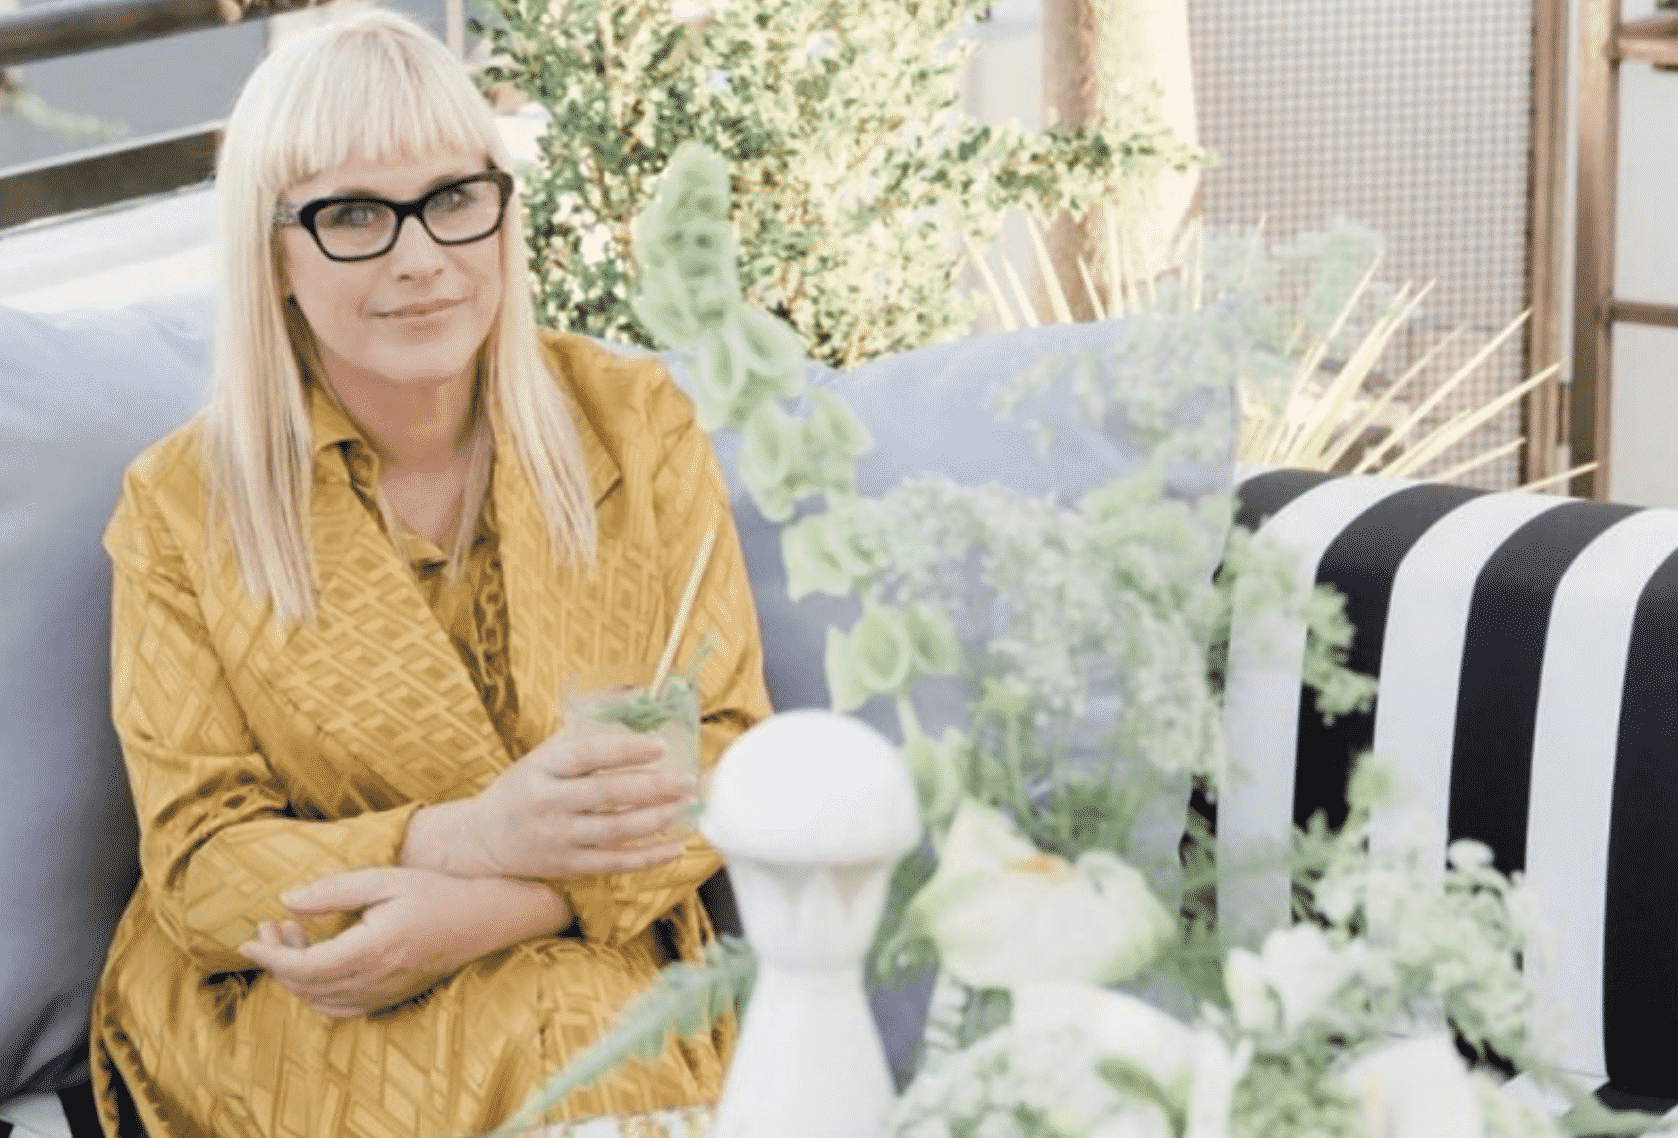 Upcoming Apple TV+ Show 'Severance' Adds Patricia Arquette